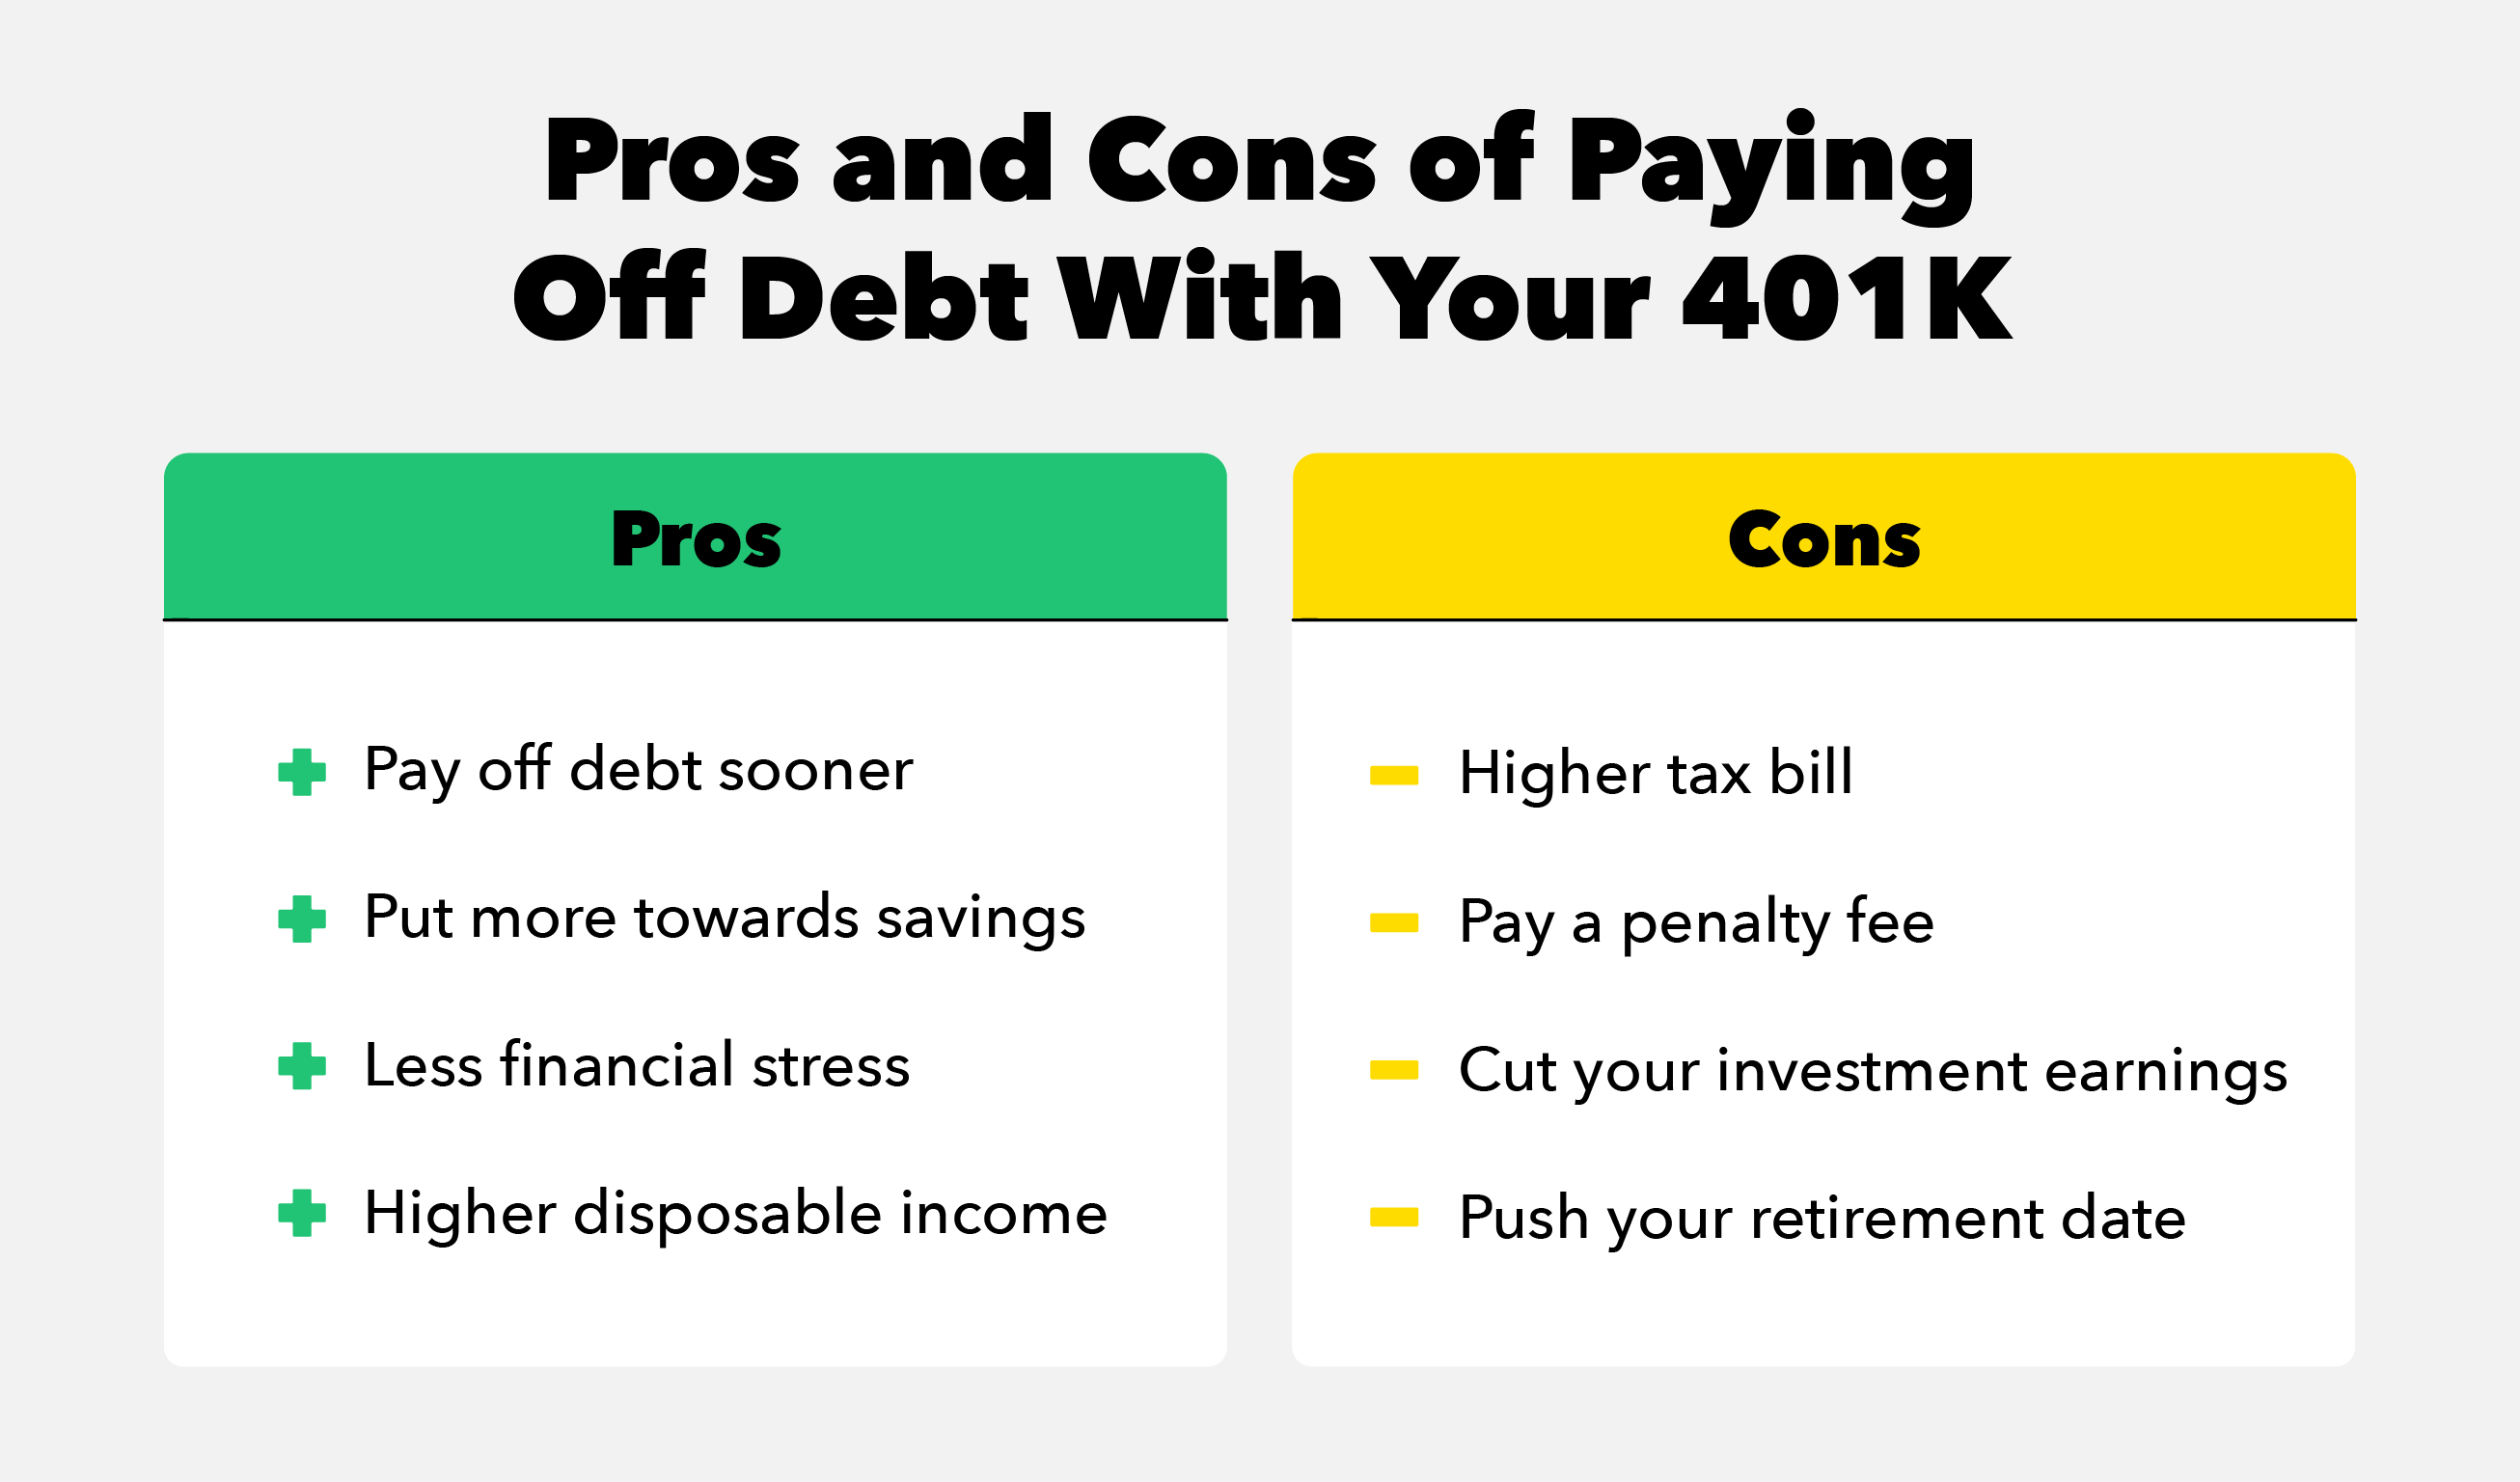 What Are the Pros and Cons?